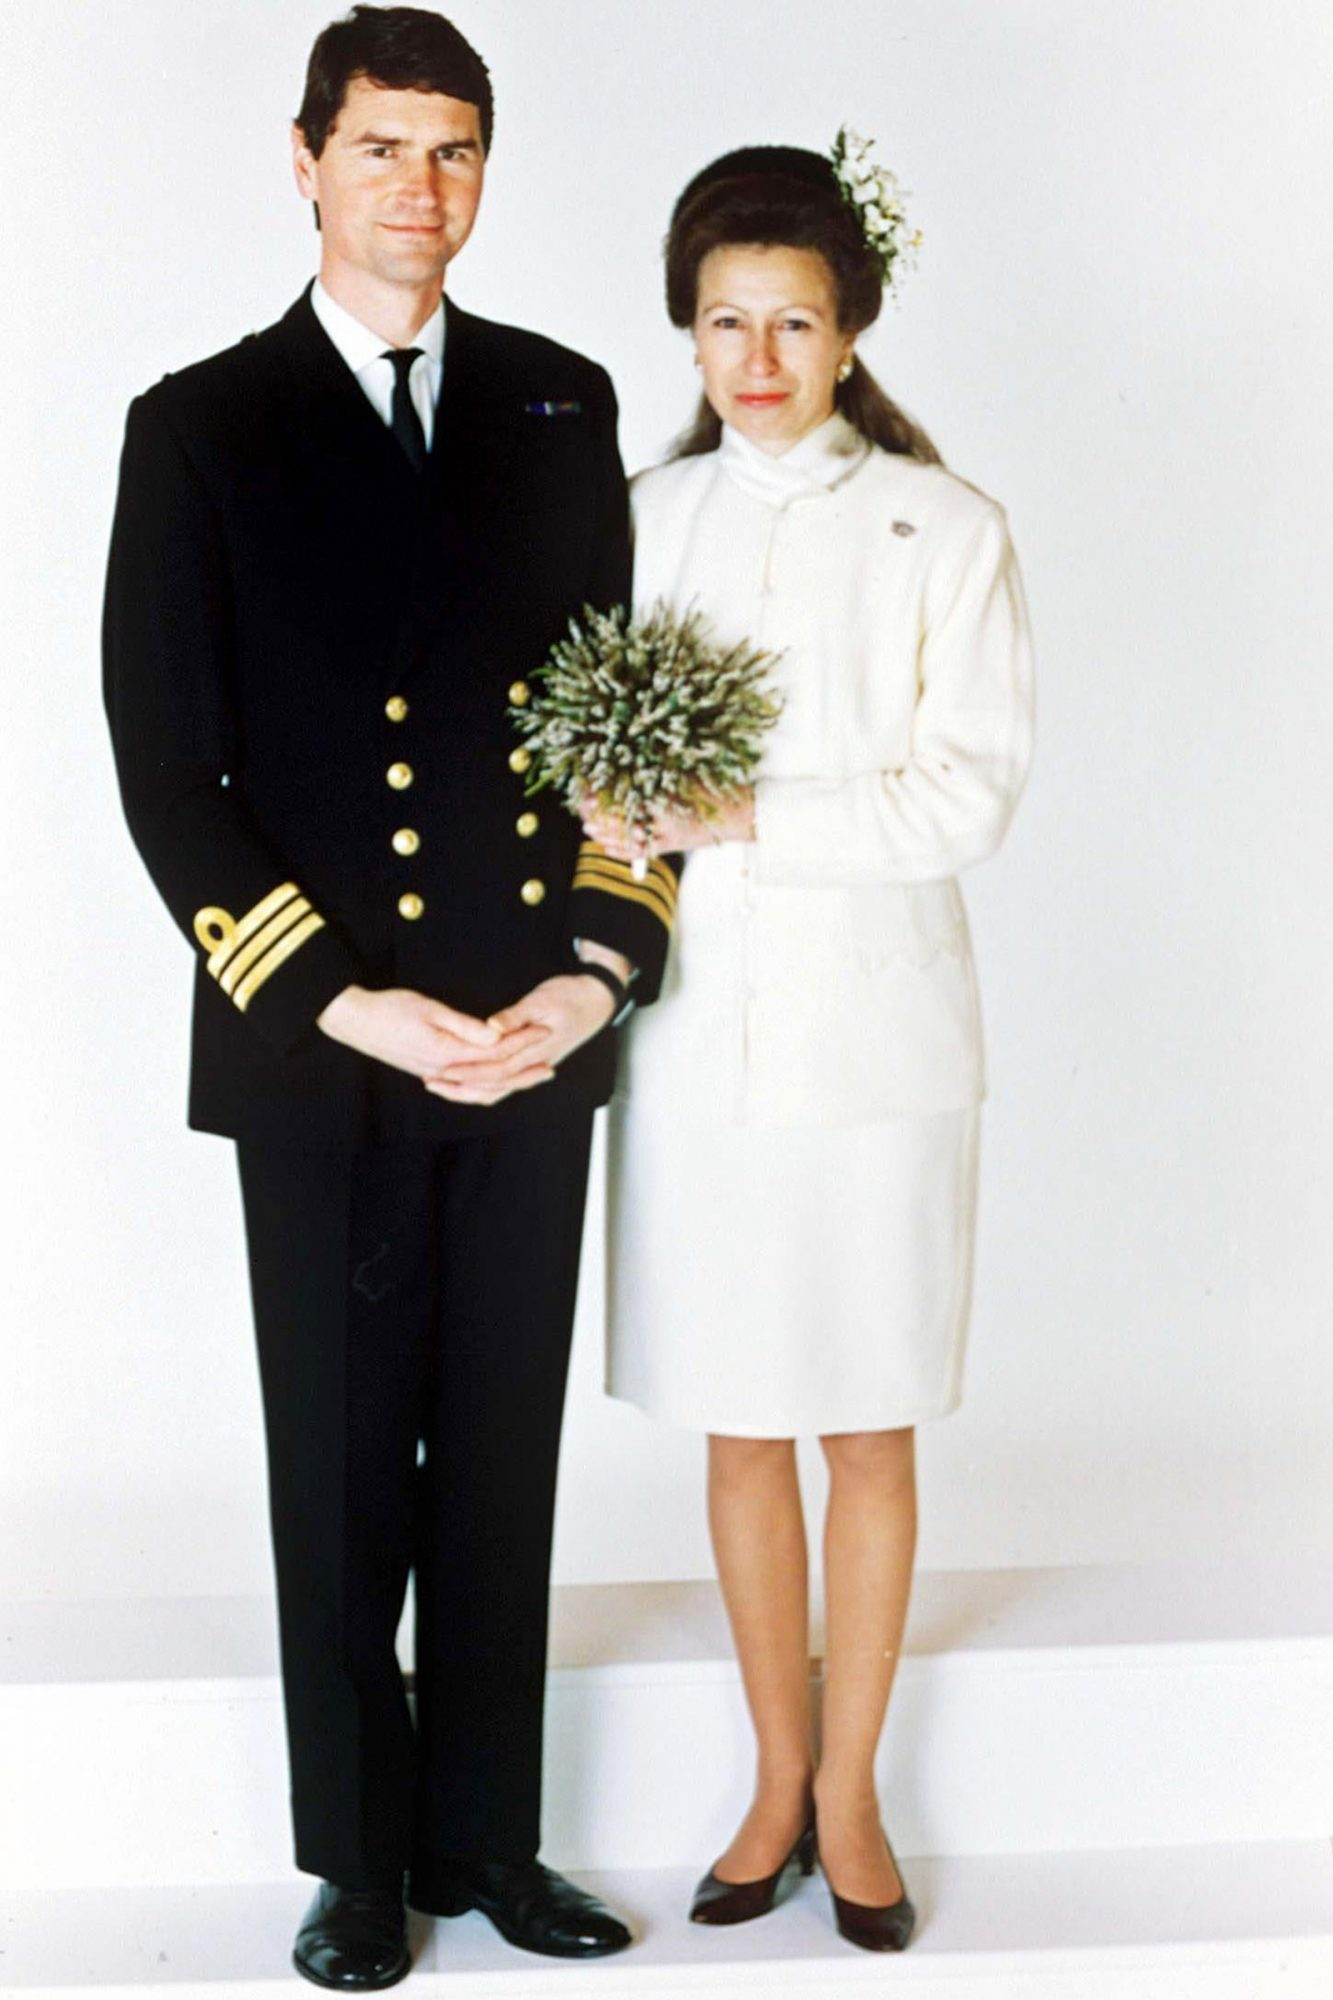 Princess Anne Married Mark Phillips 9 Years Ago  PEOPLE.com